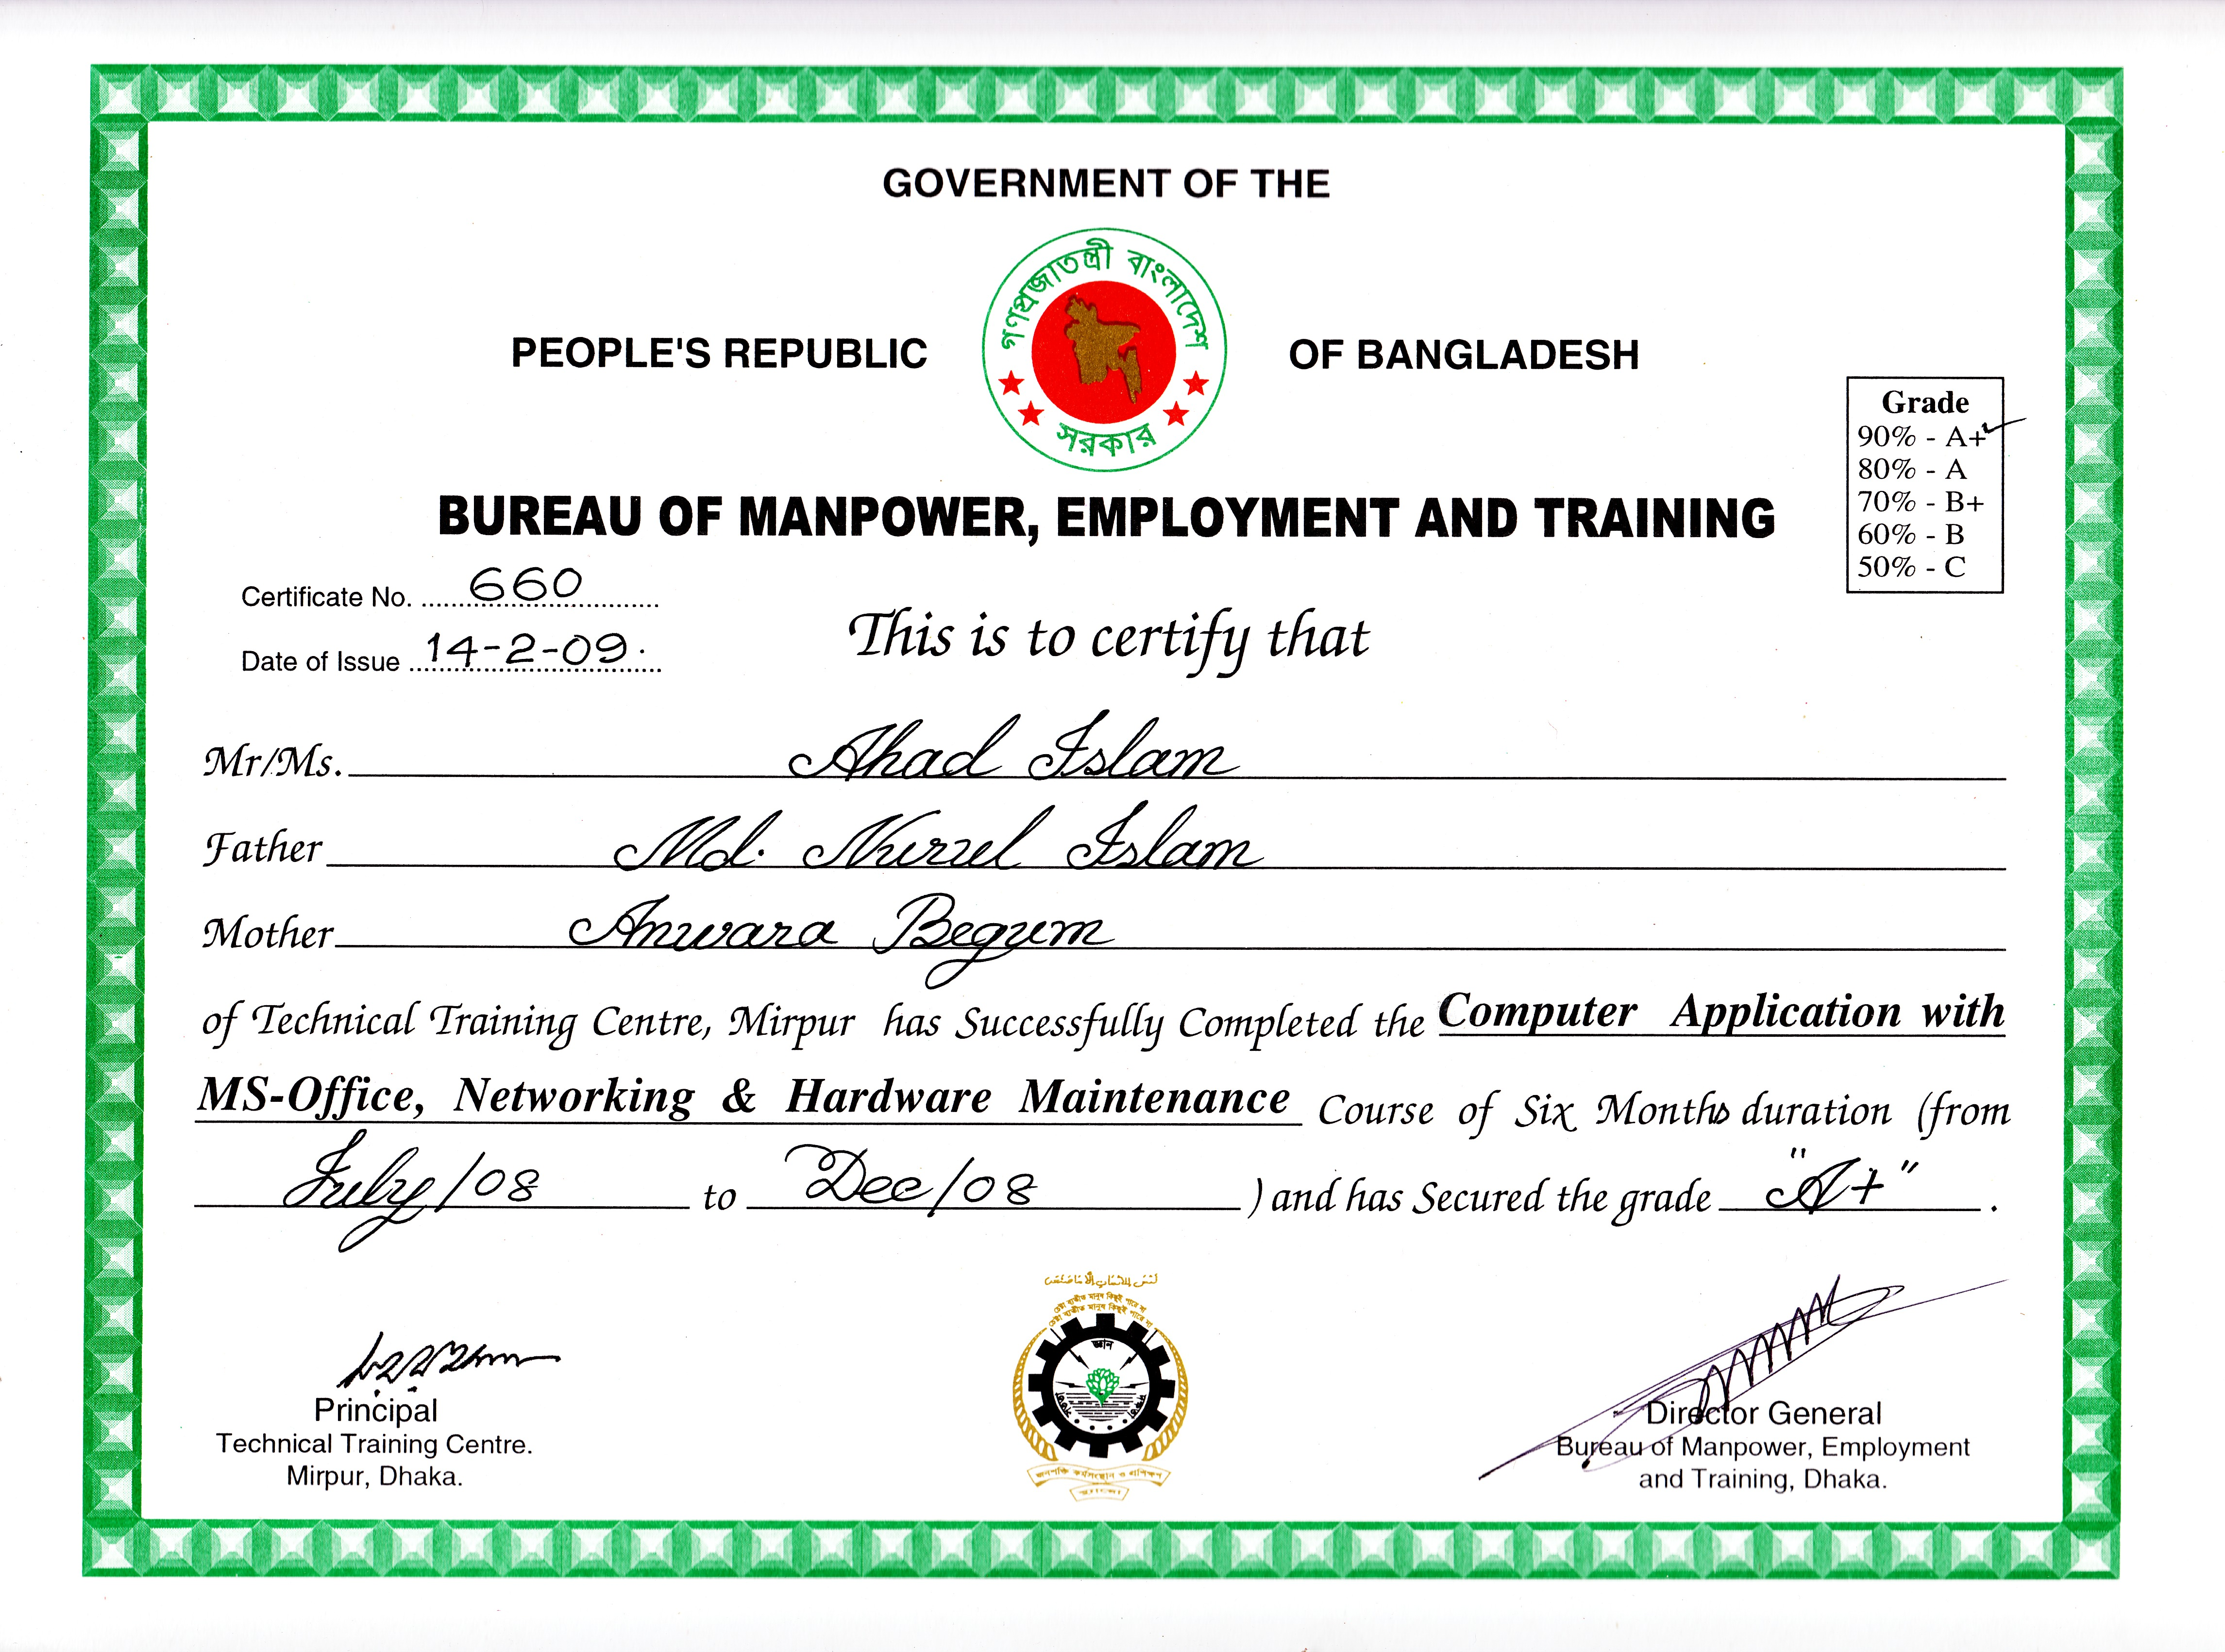 Ahad islam bayt training institute bureau of manpower employment and training 1betcityfo Image collections